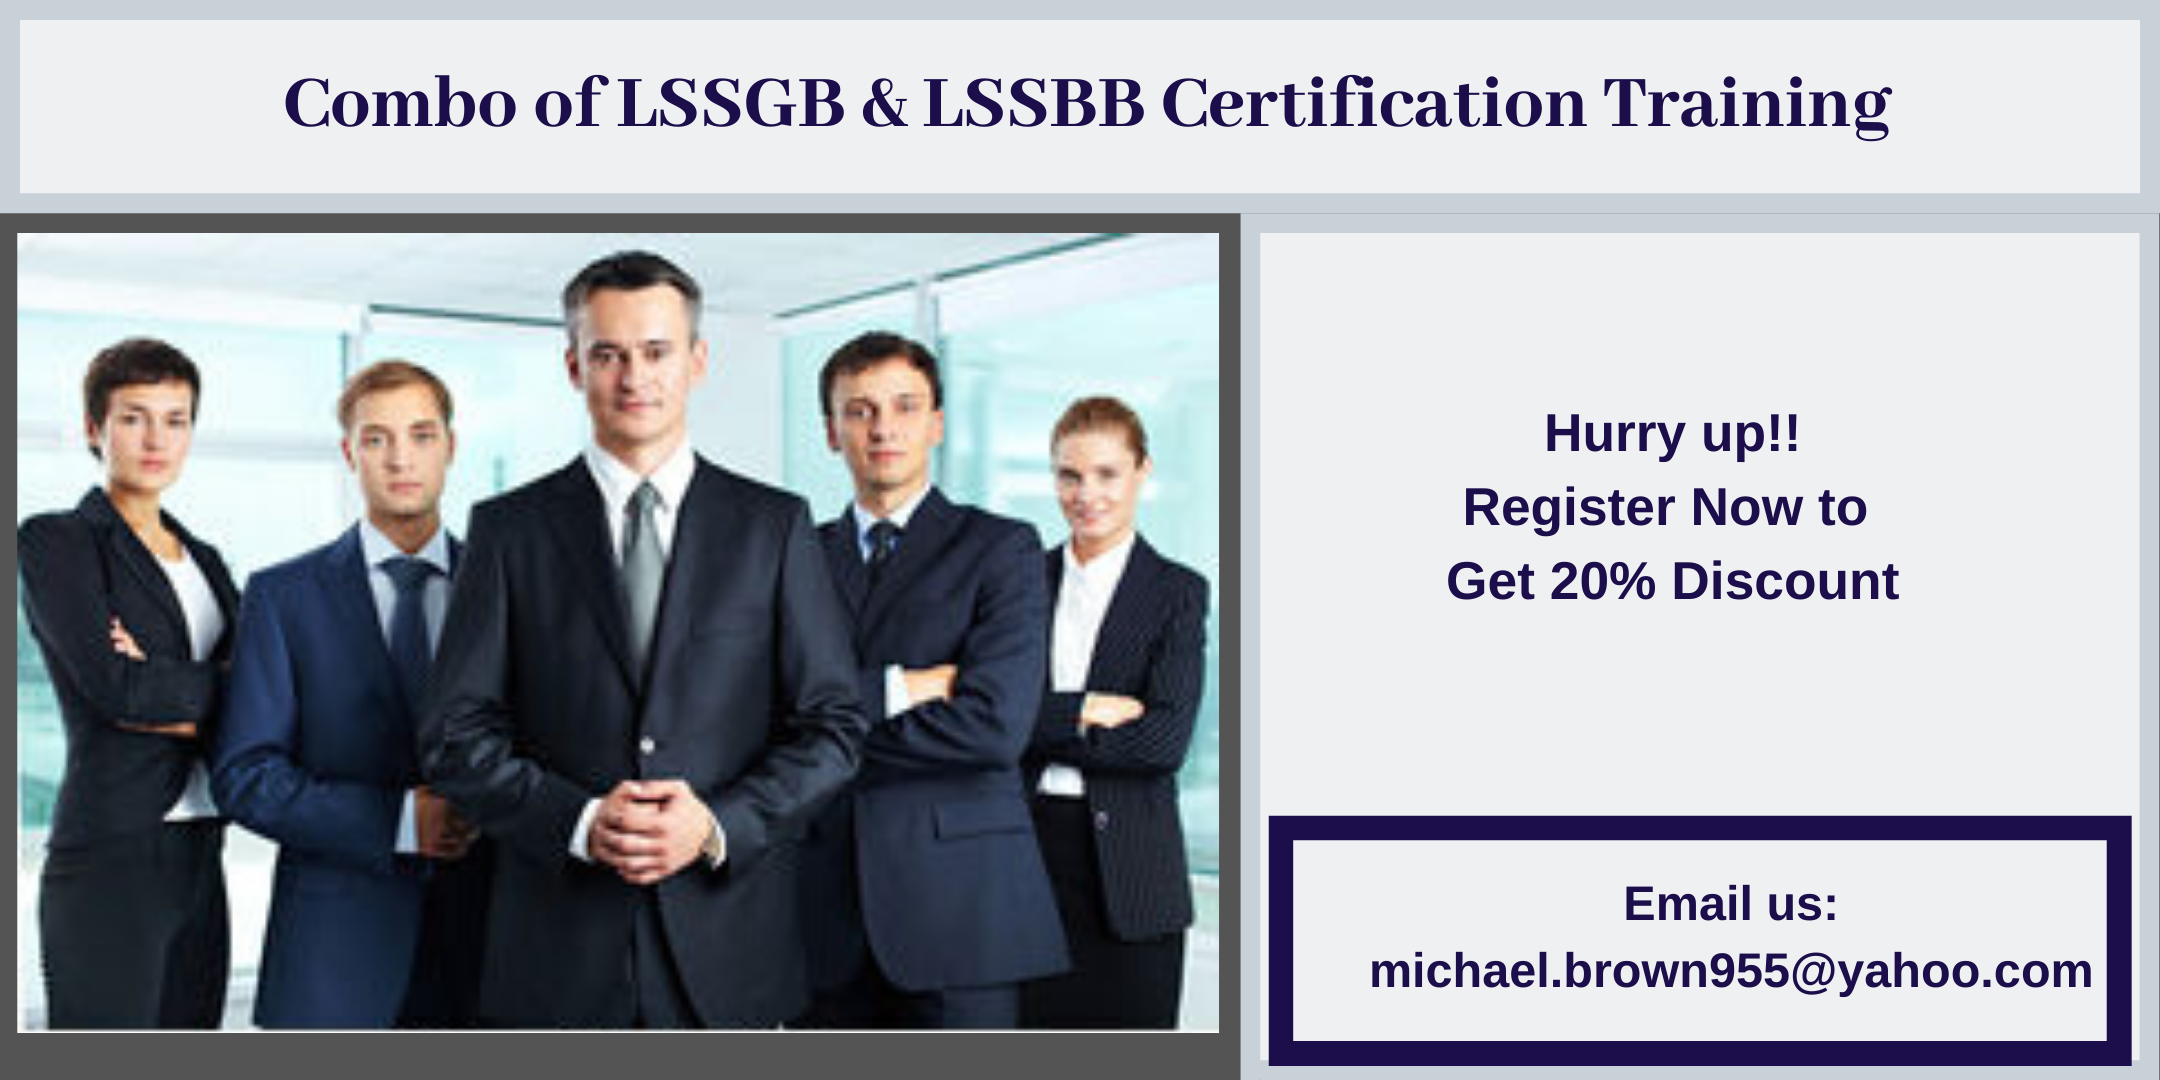 Combo of LSSGB & LSSBB 4 days Certification Training in Arrowsic, ME